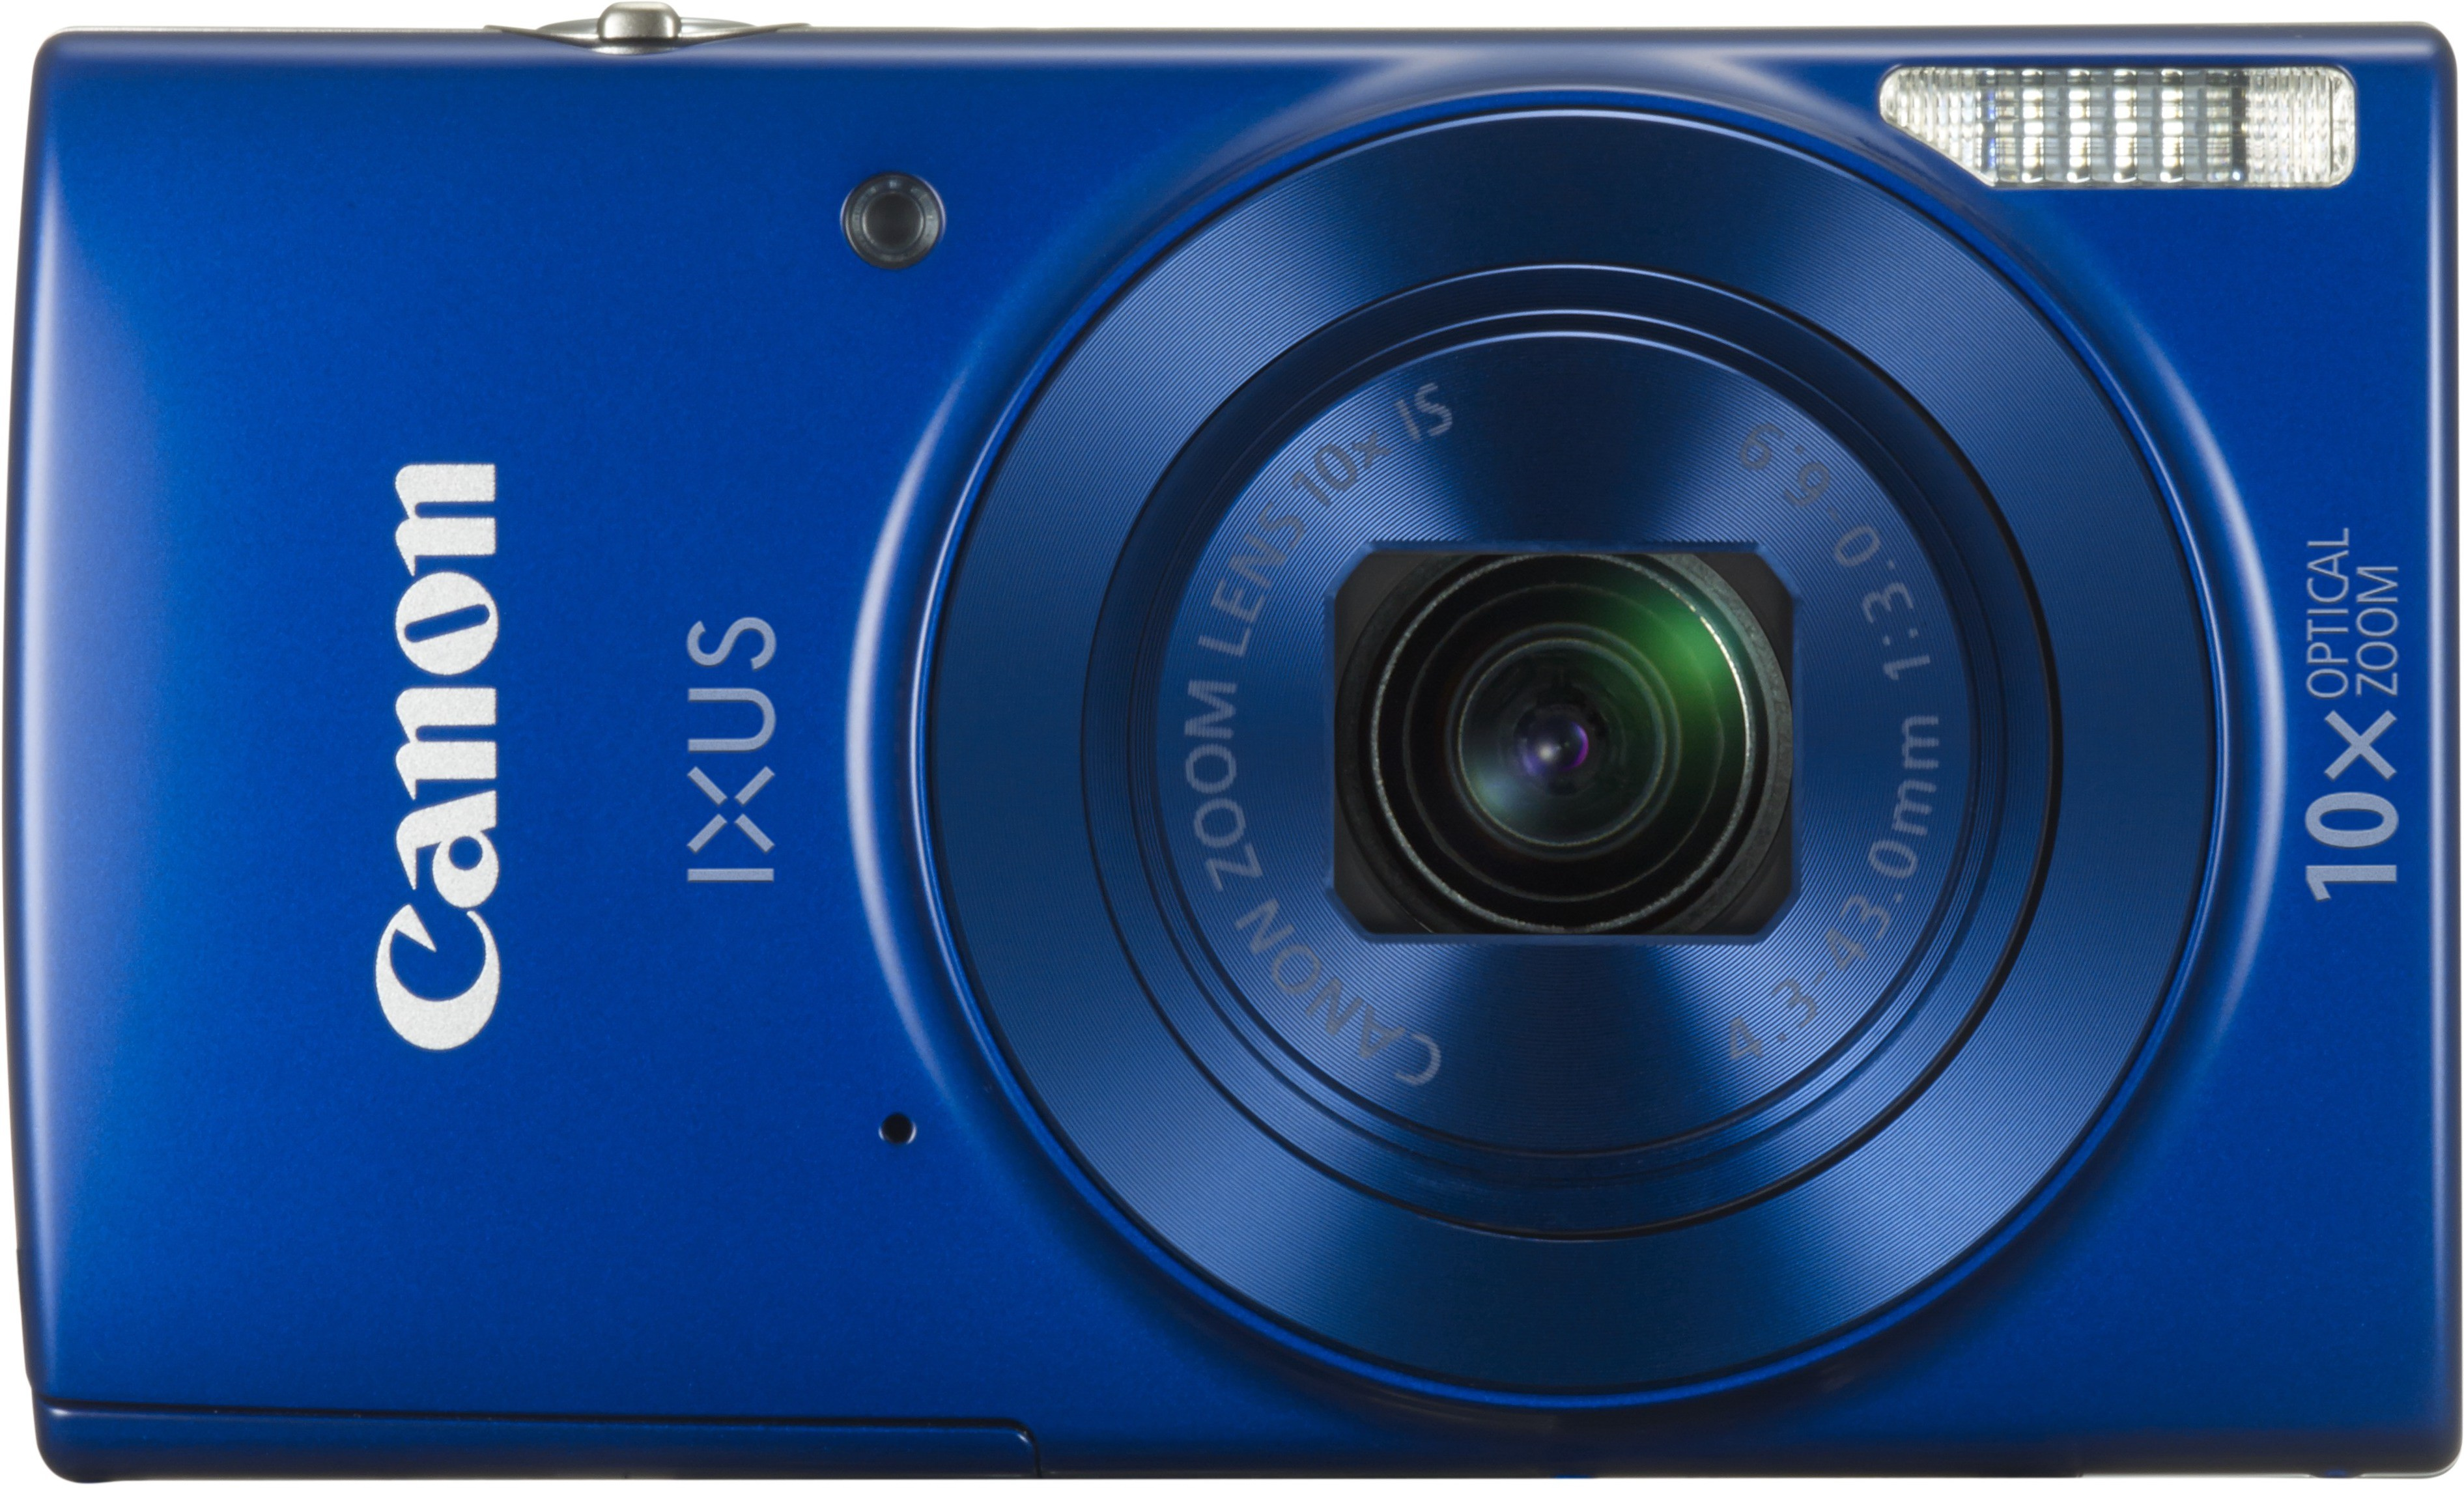 Canon IXUS 190 Point and Shoot Camera  Image